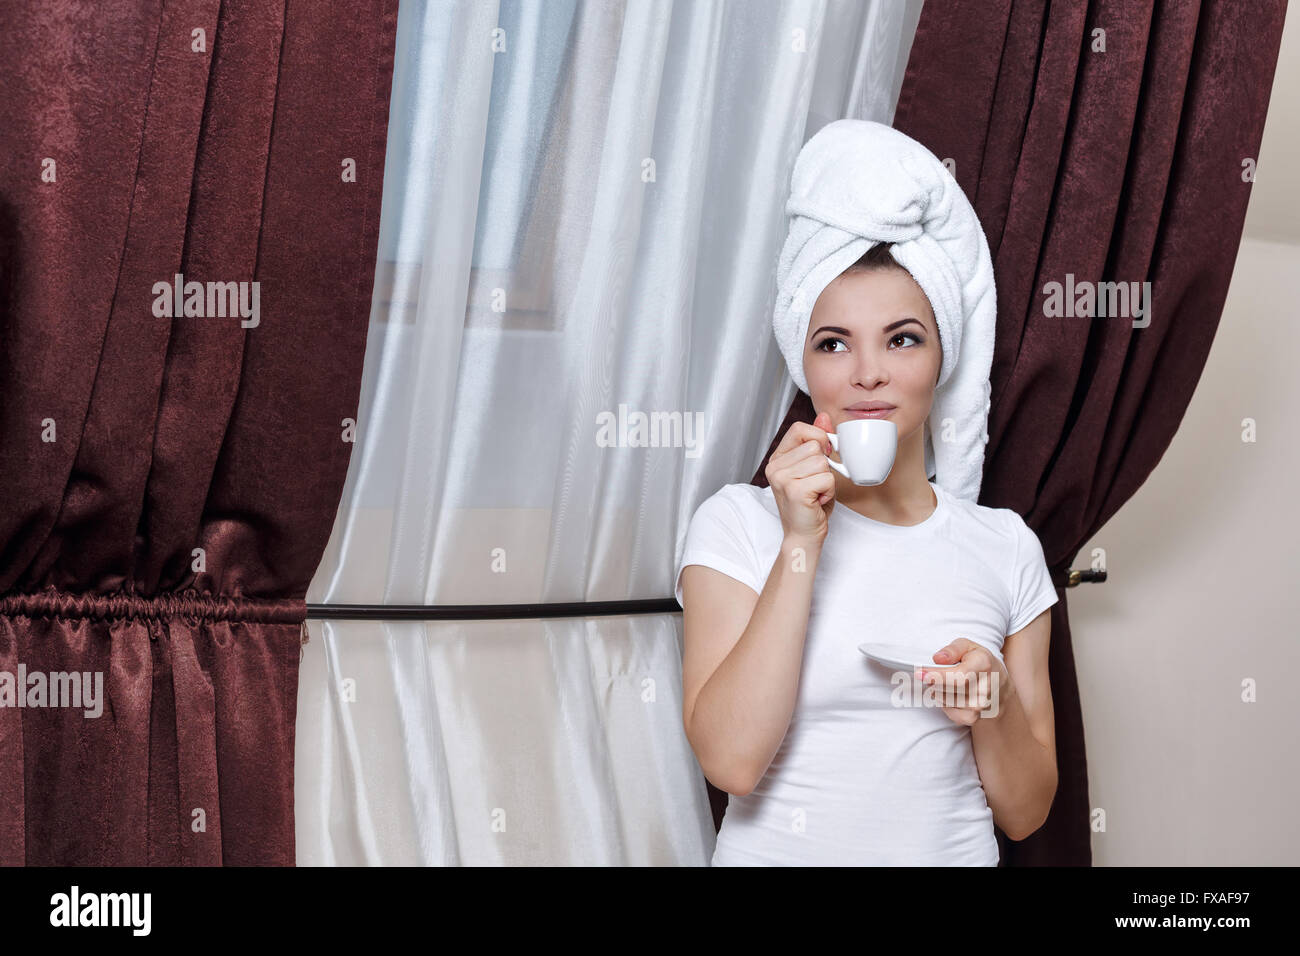 Drinking Coffee in the Shower